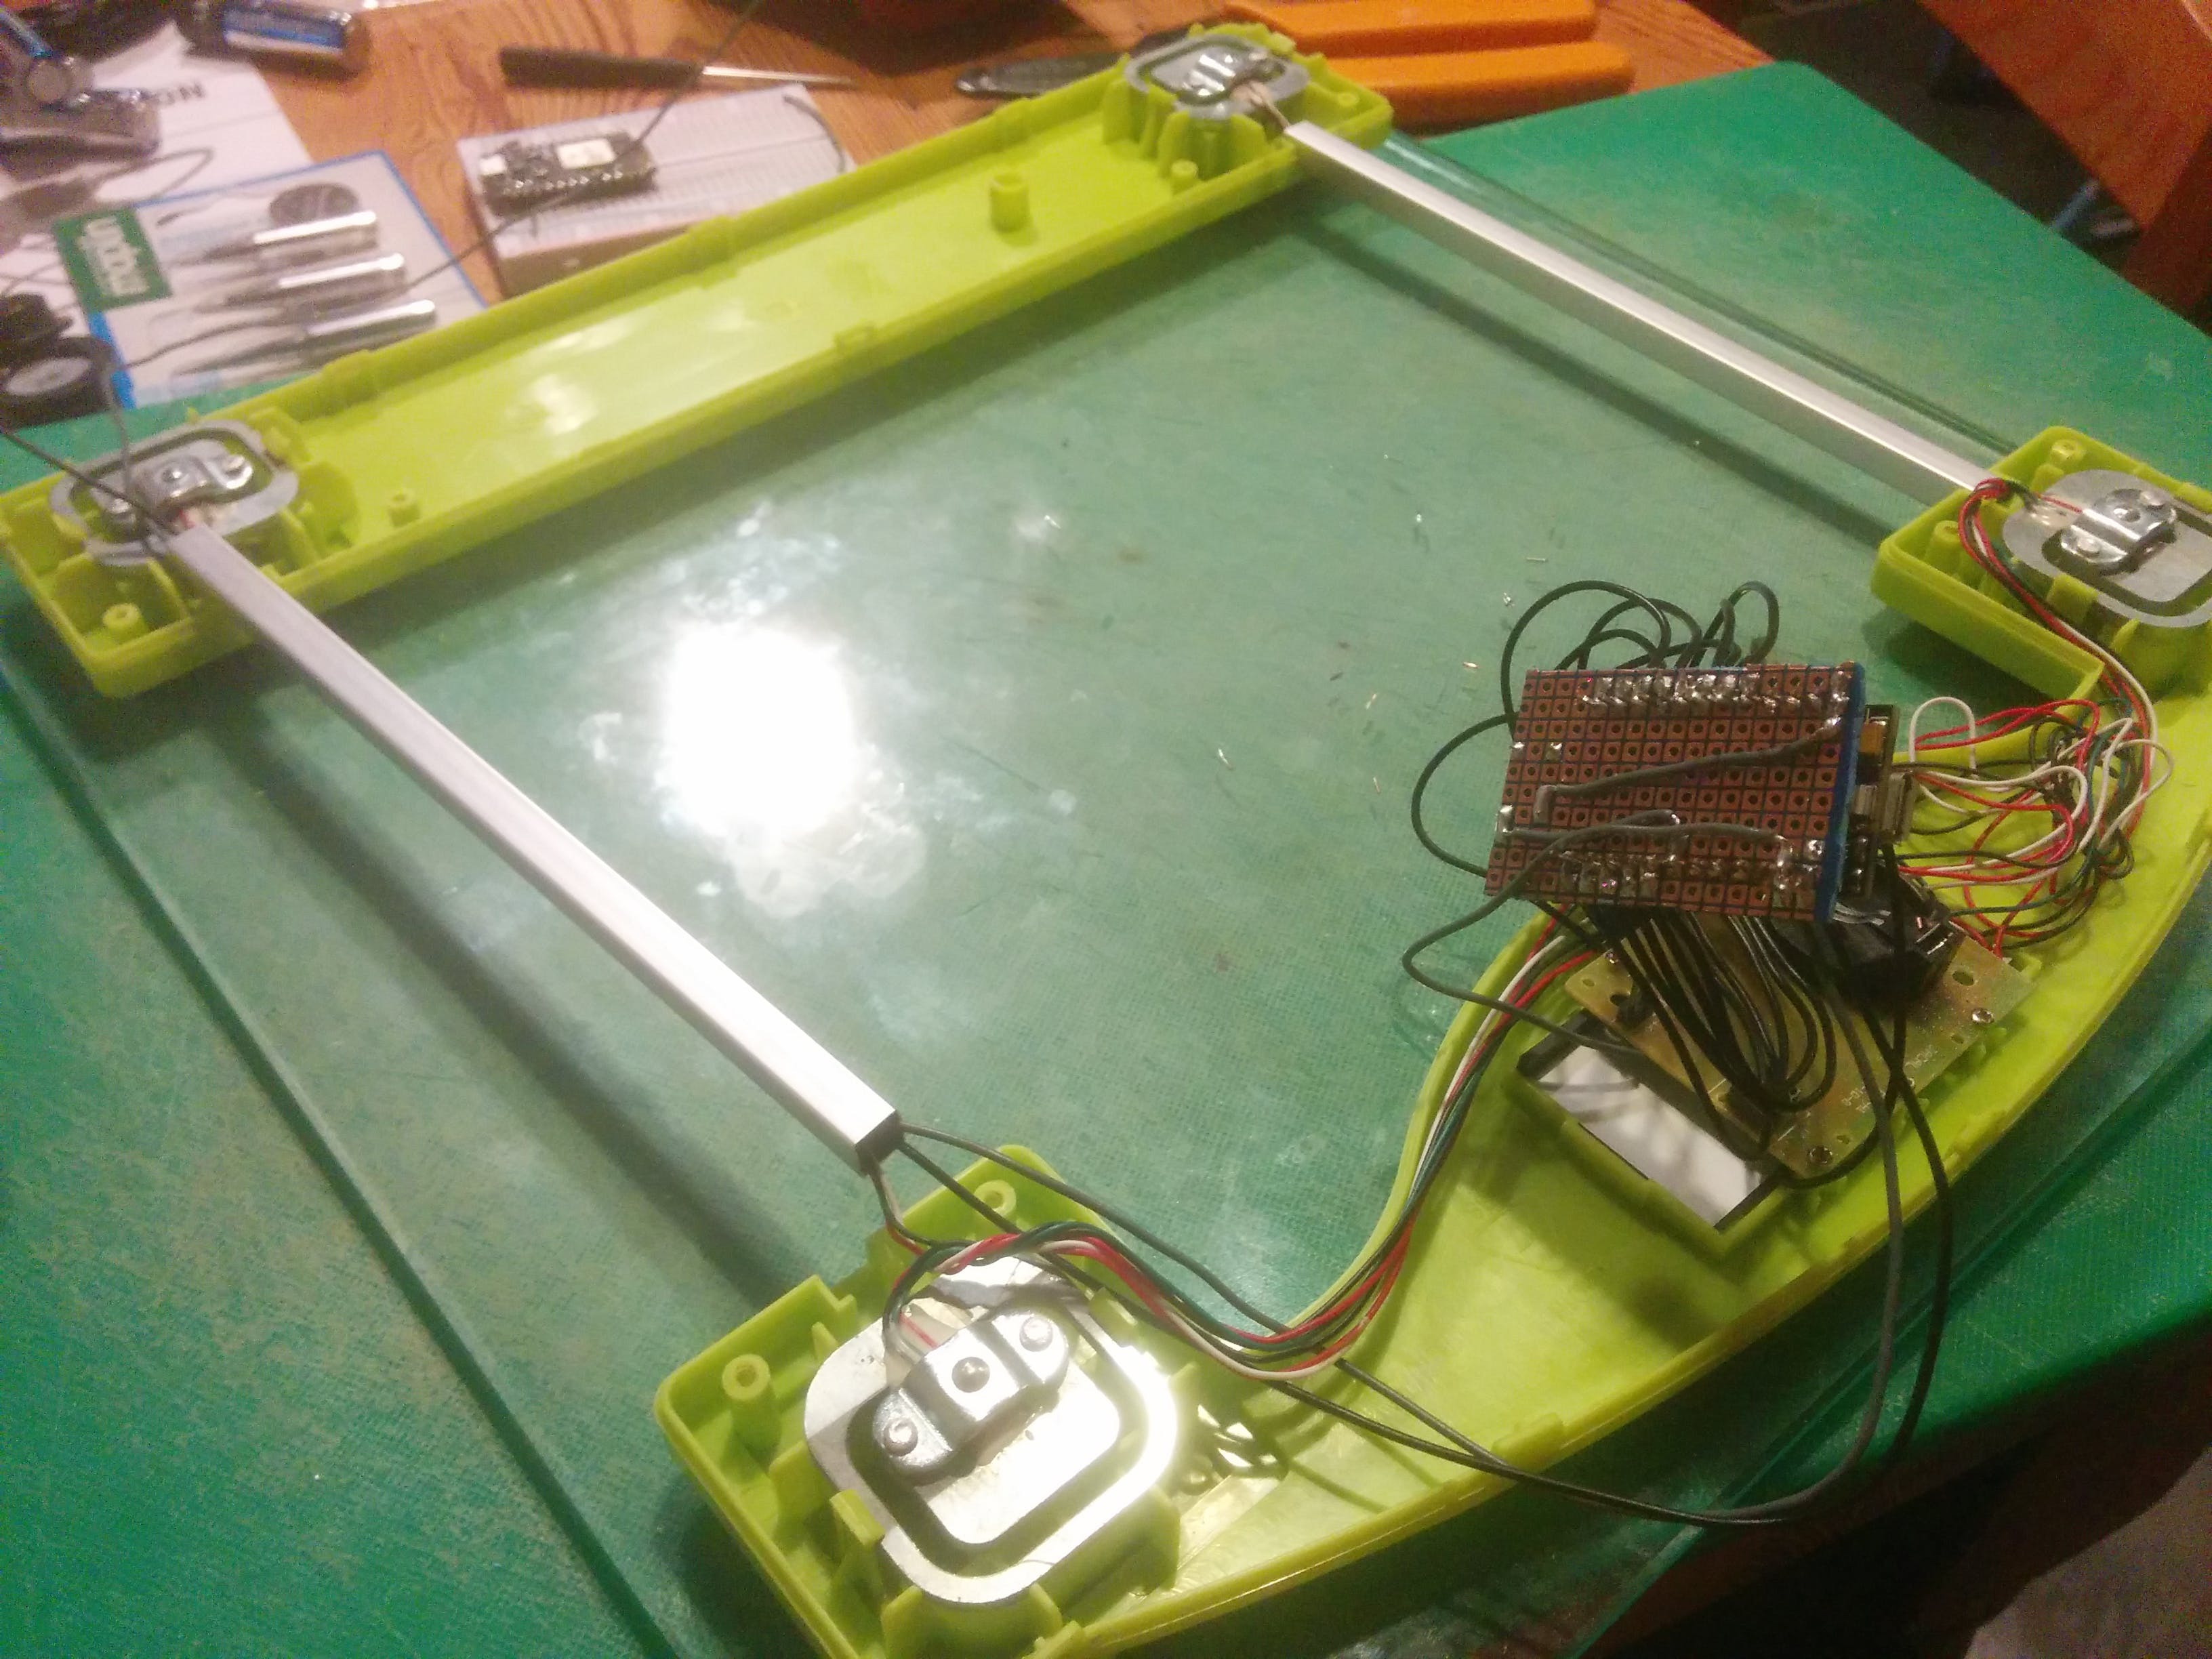 LCD and scale board screwed into place, Core and button soldered onto matrix board